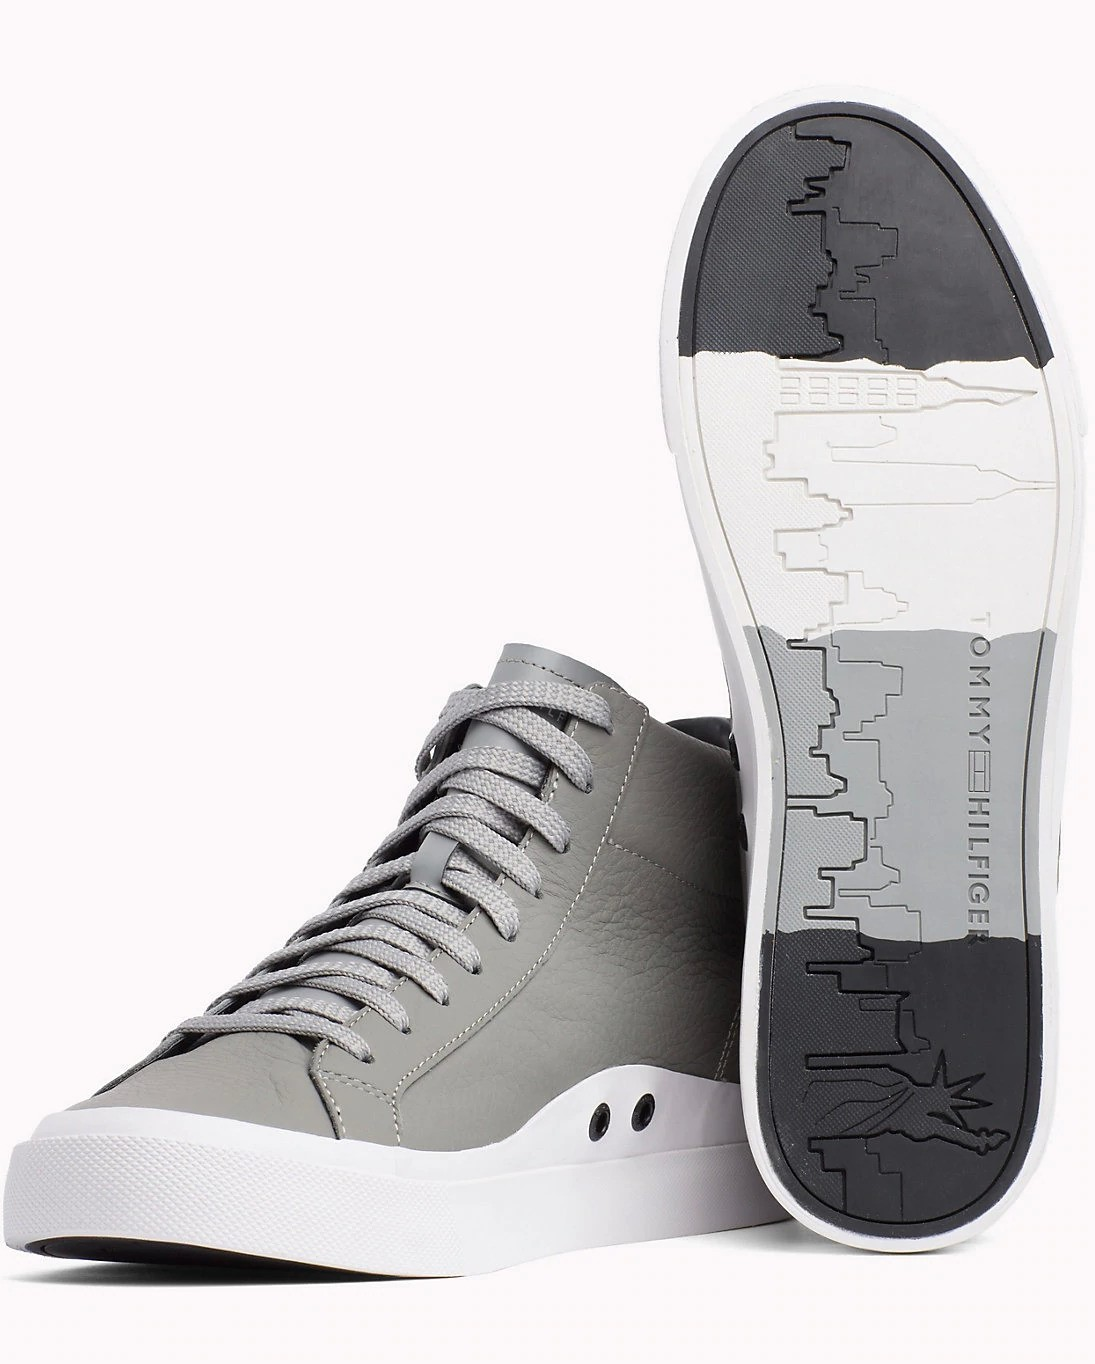 Tommy Hilfiger Gray Leather Unisex